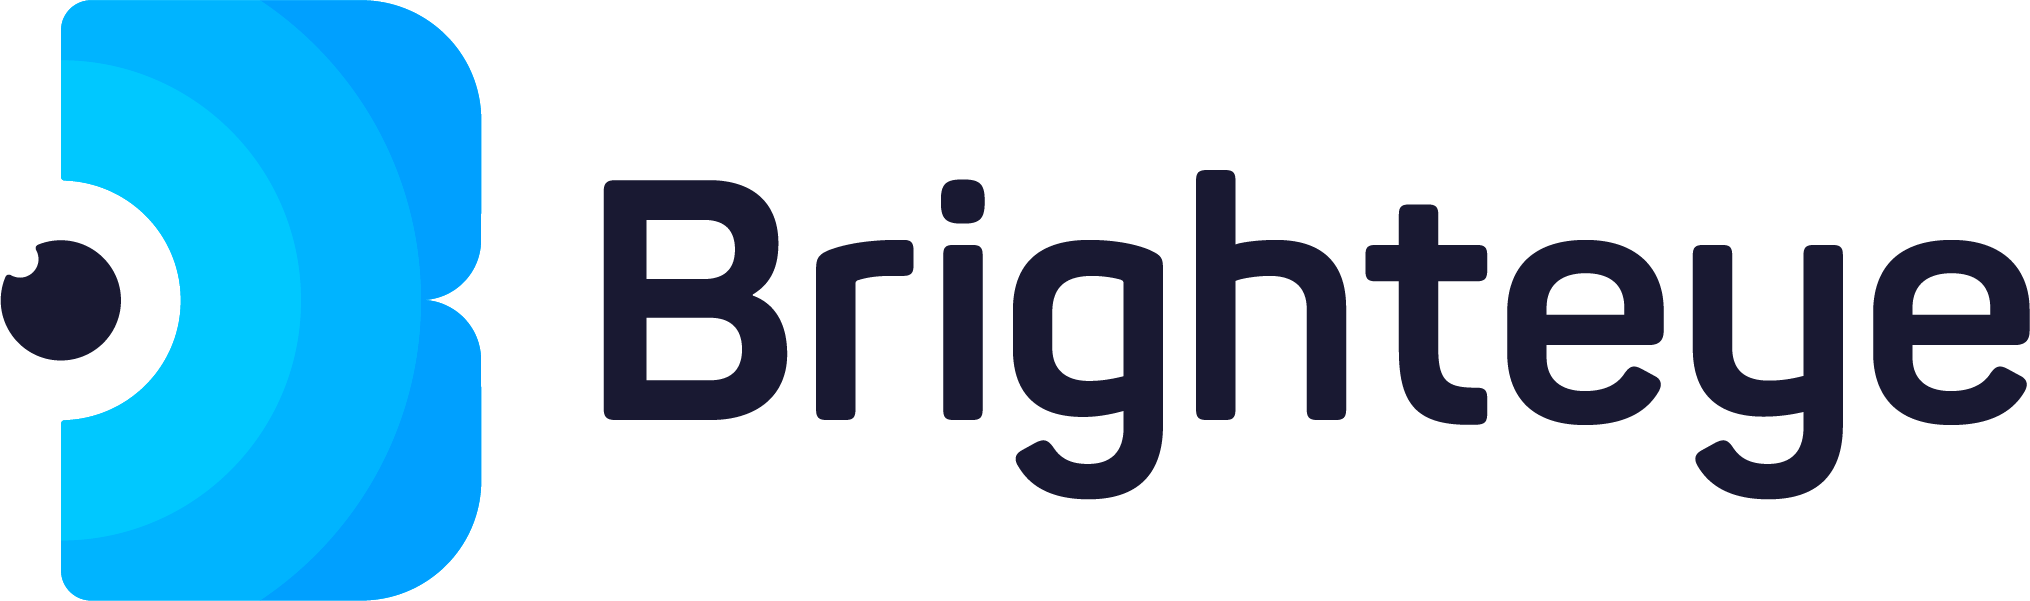 Brighteye logo